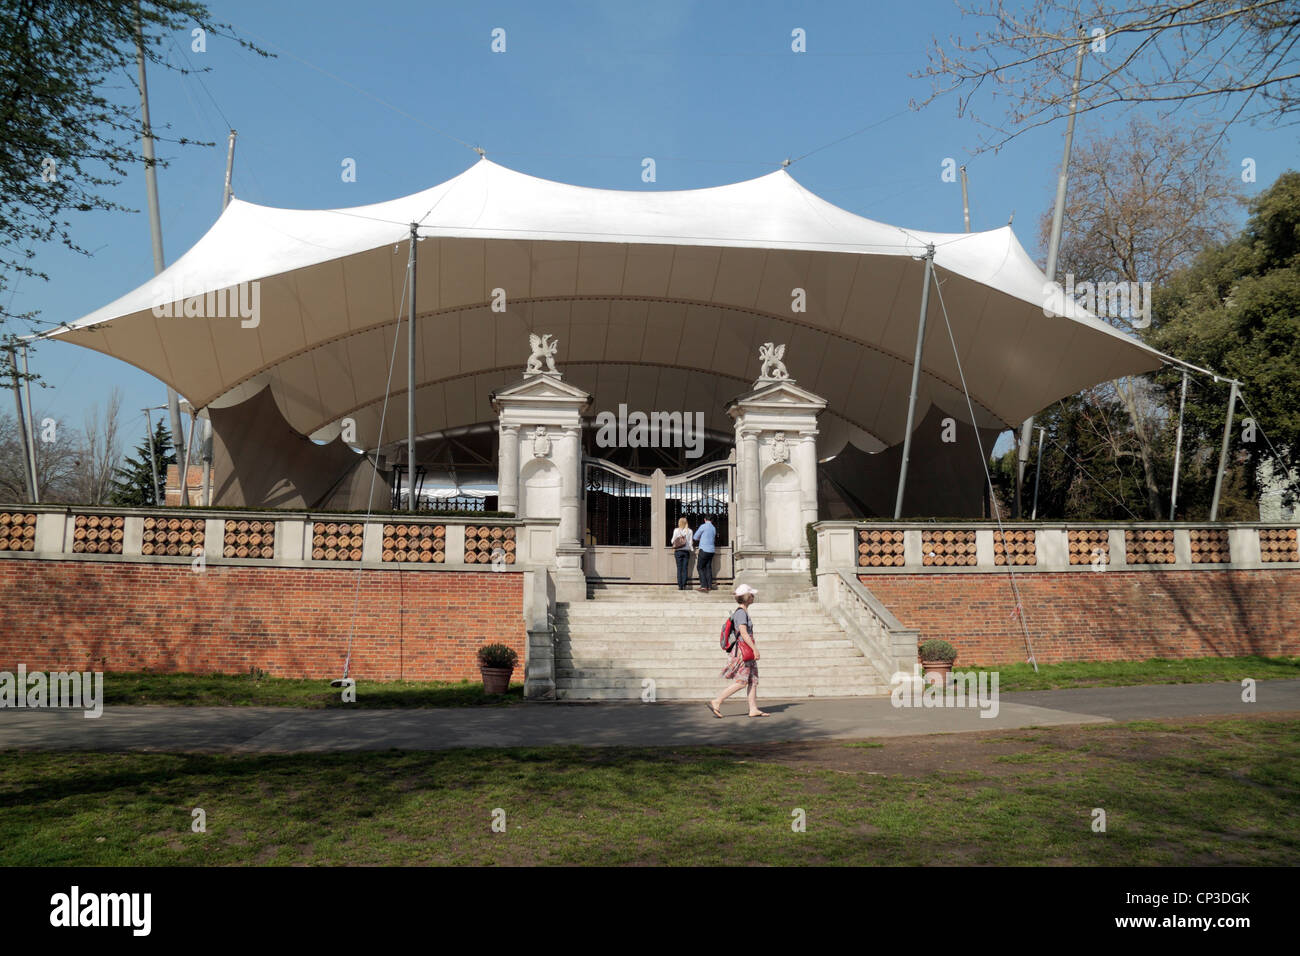 The open air Holland Park Theatre, home of the Opera Holland Park, in Holland Park, London, UK. Stock Photo